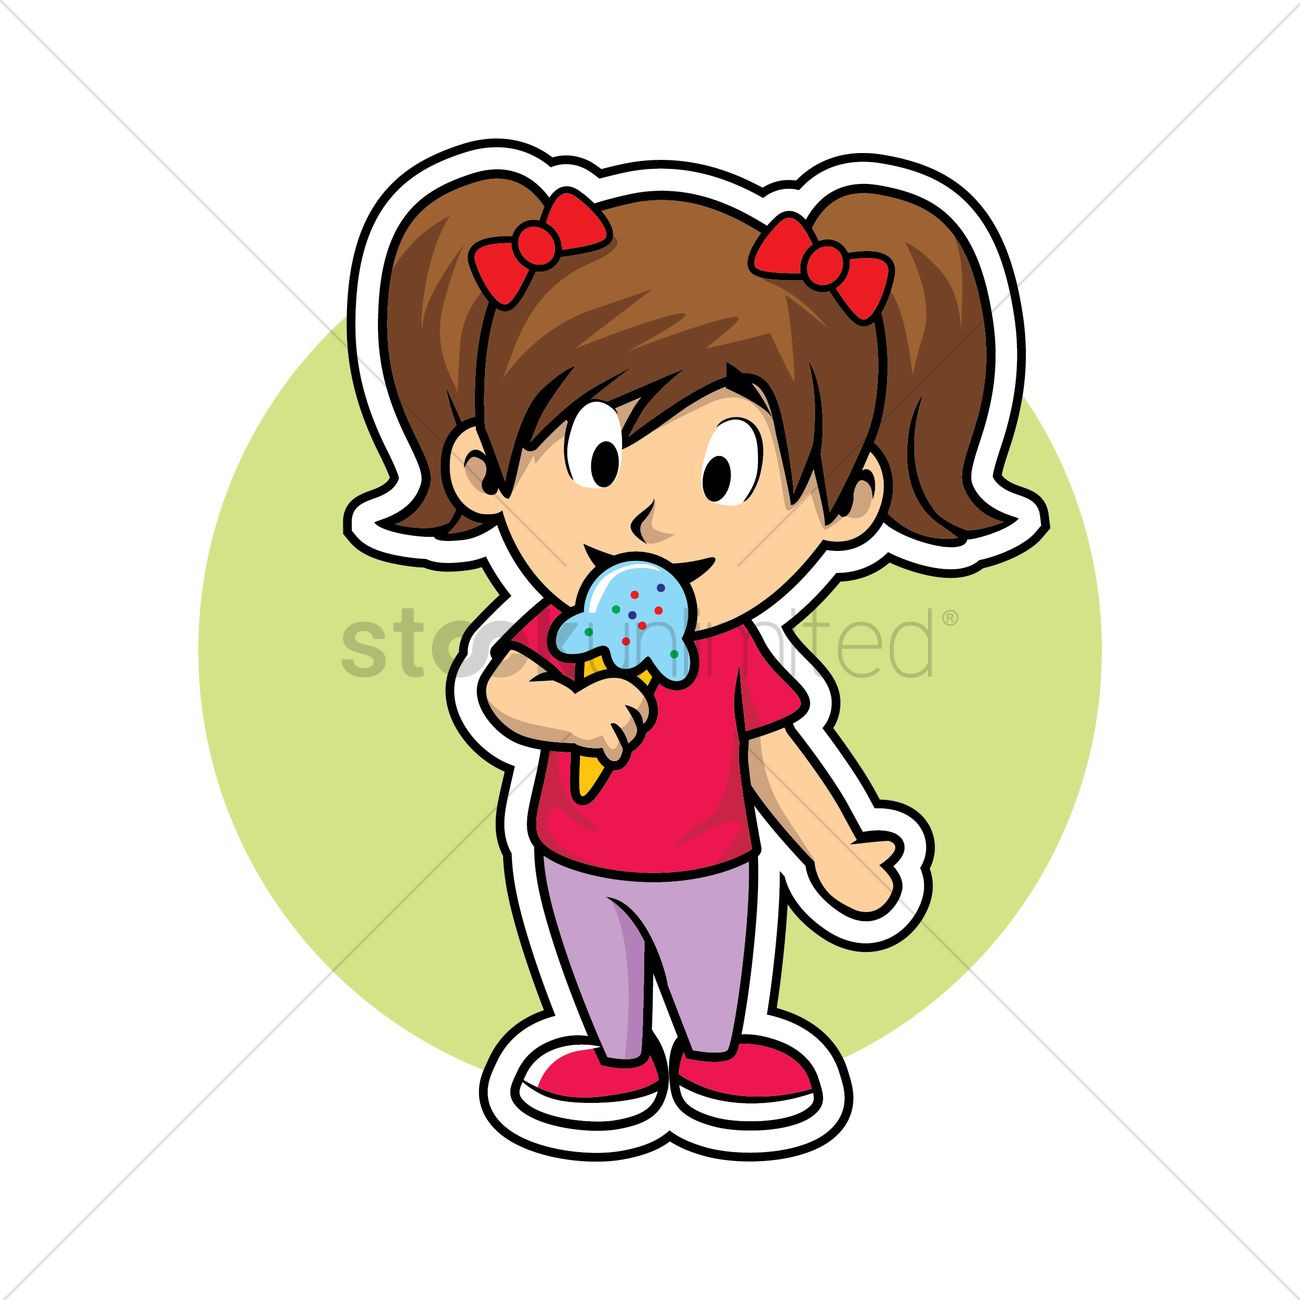 Free Girl eating ice cream Vector Image.